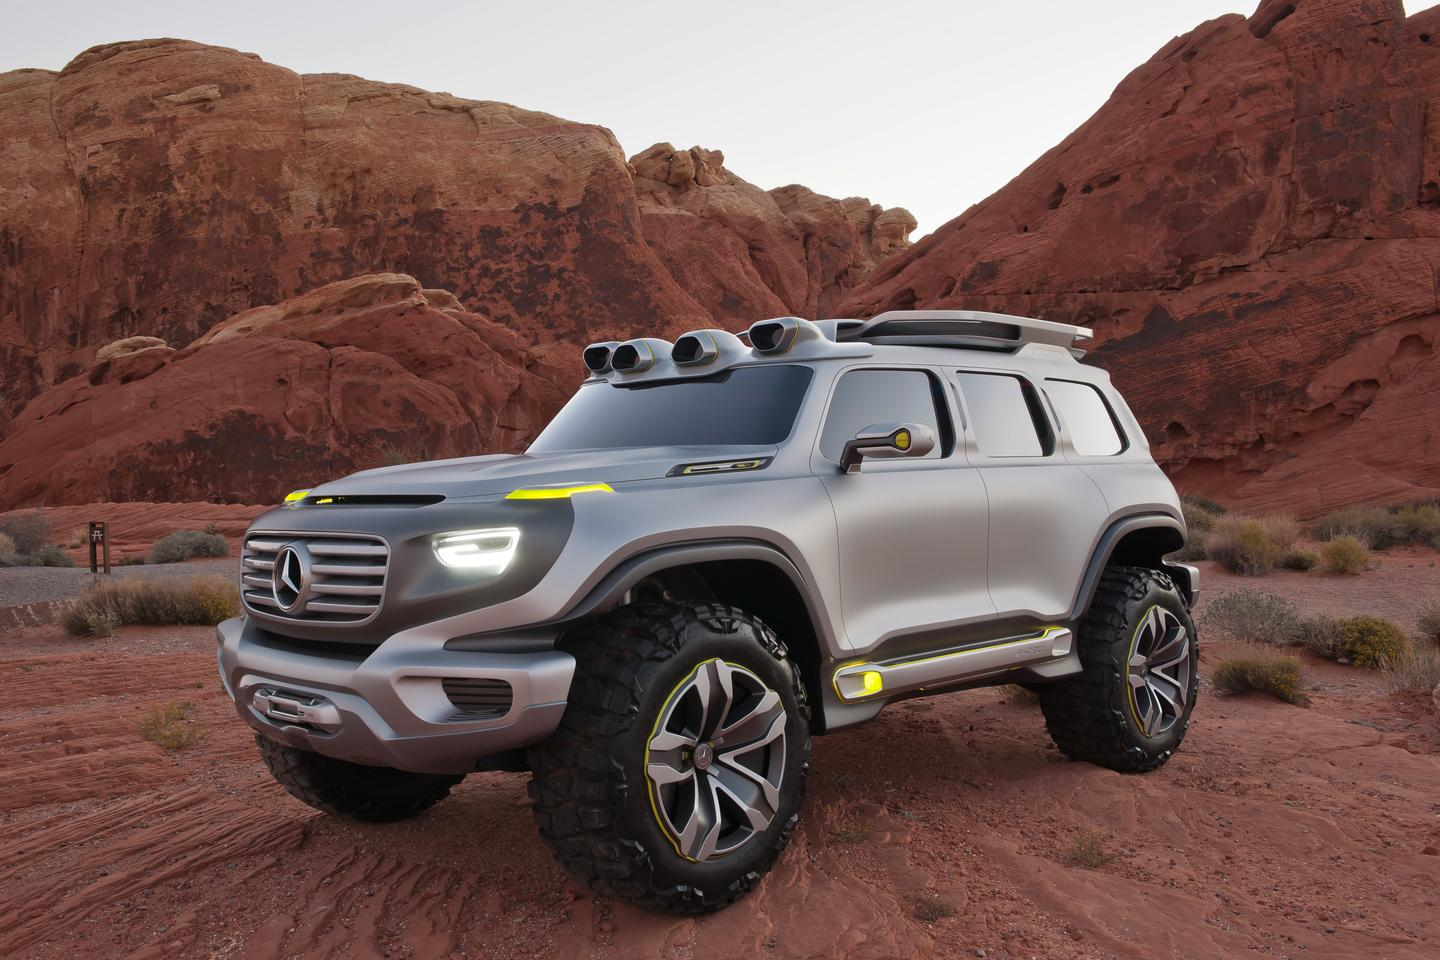 The Mercedes-Benz Ener-G-Force concept design